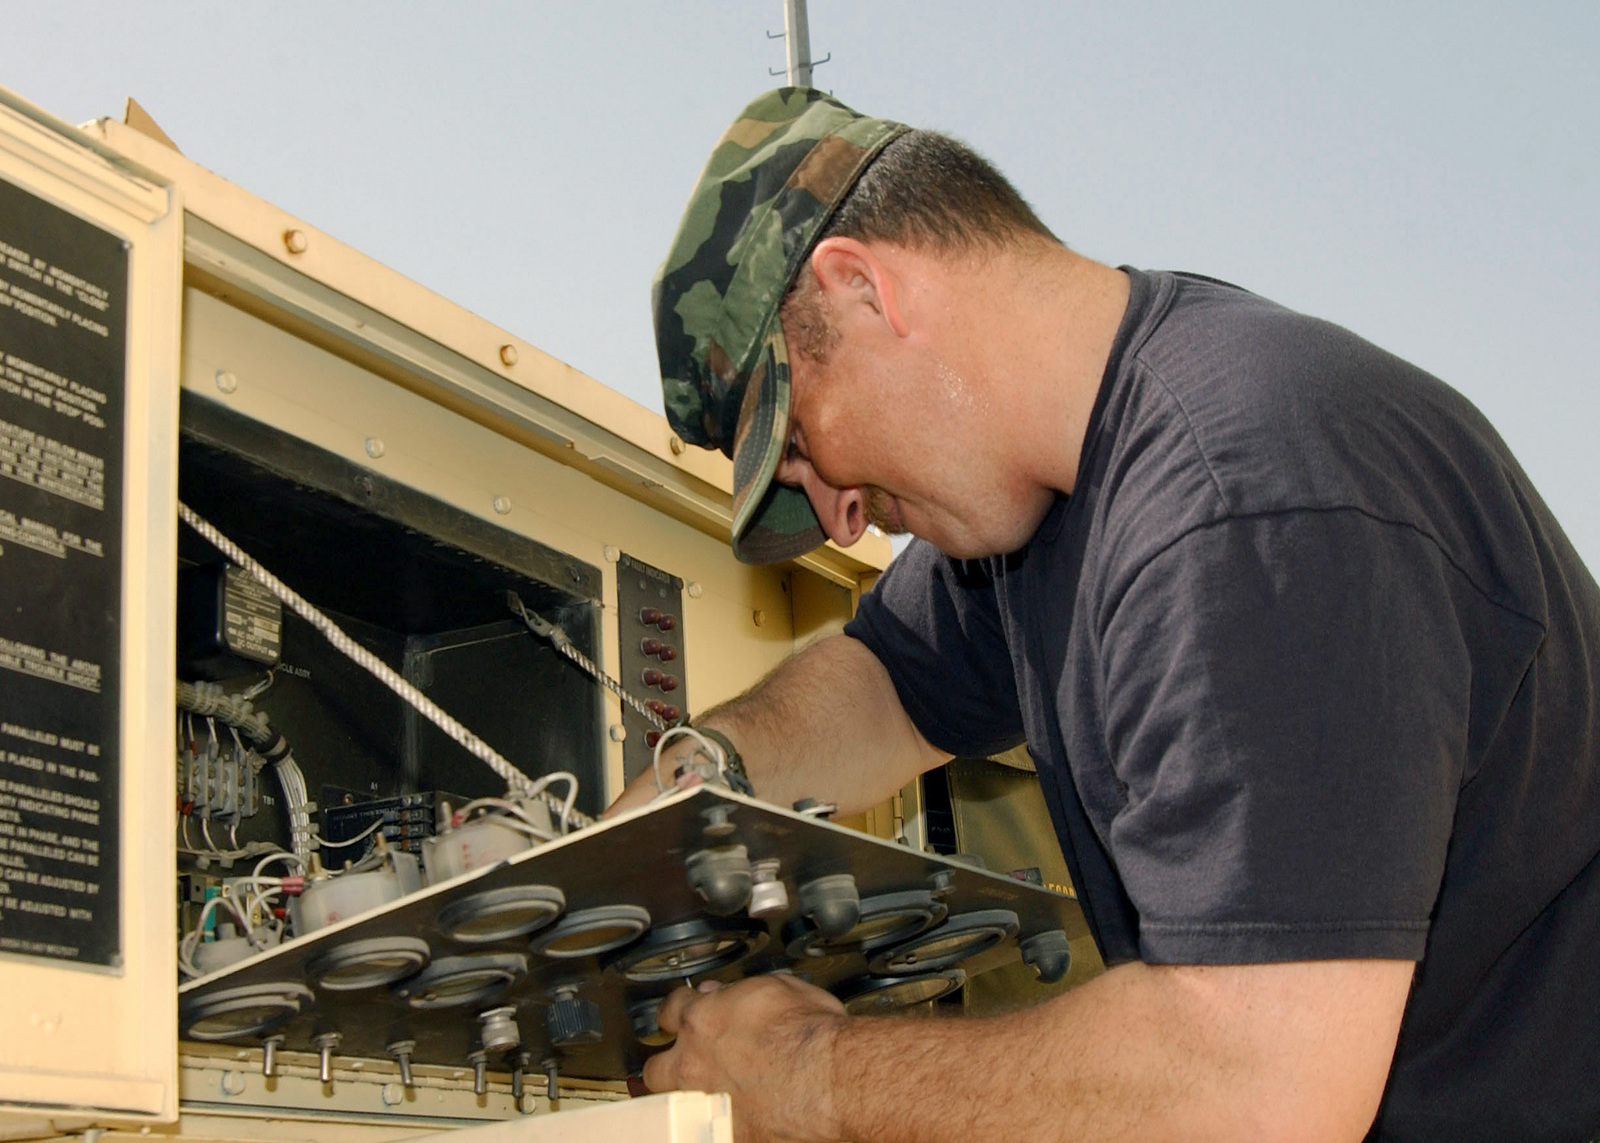 US Air Force (USAF) STAFF Sergeant (SSGT) Frederick Fink, a power production craftsman, repairs the frequency monitoring module on a generator in the deployed power shop at Incirlik Air Base, Turkey in support of Operation NORTHERN WATCH